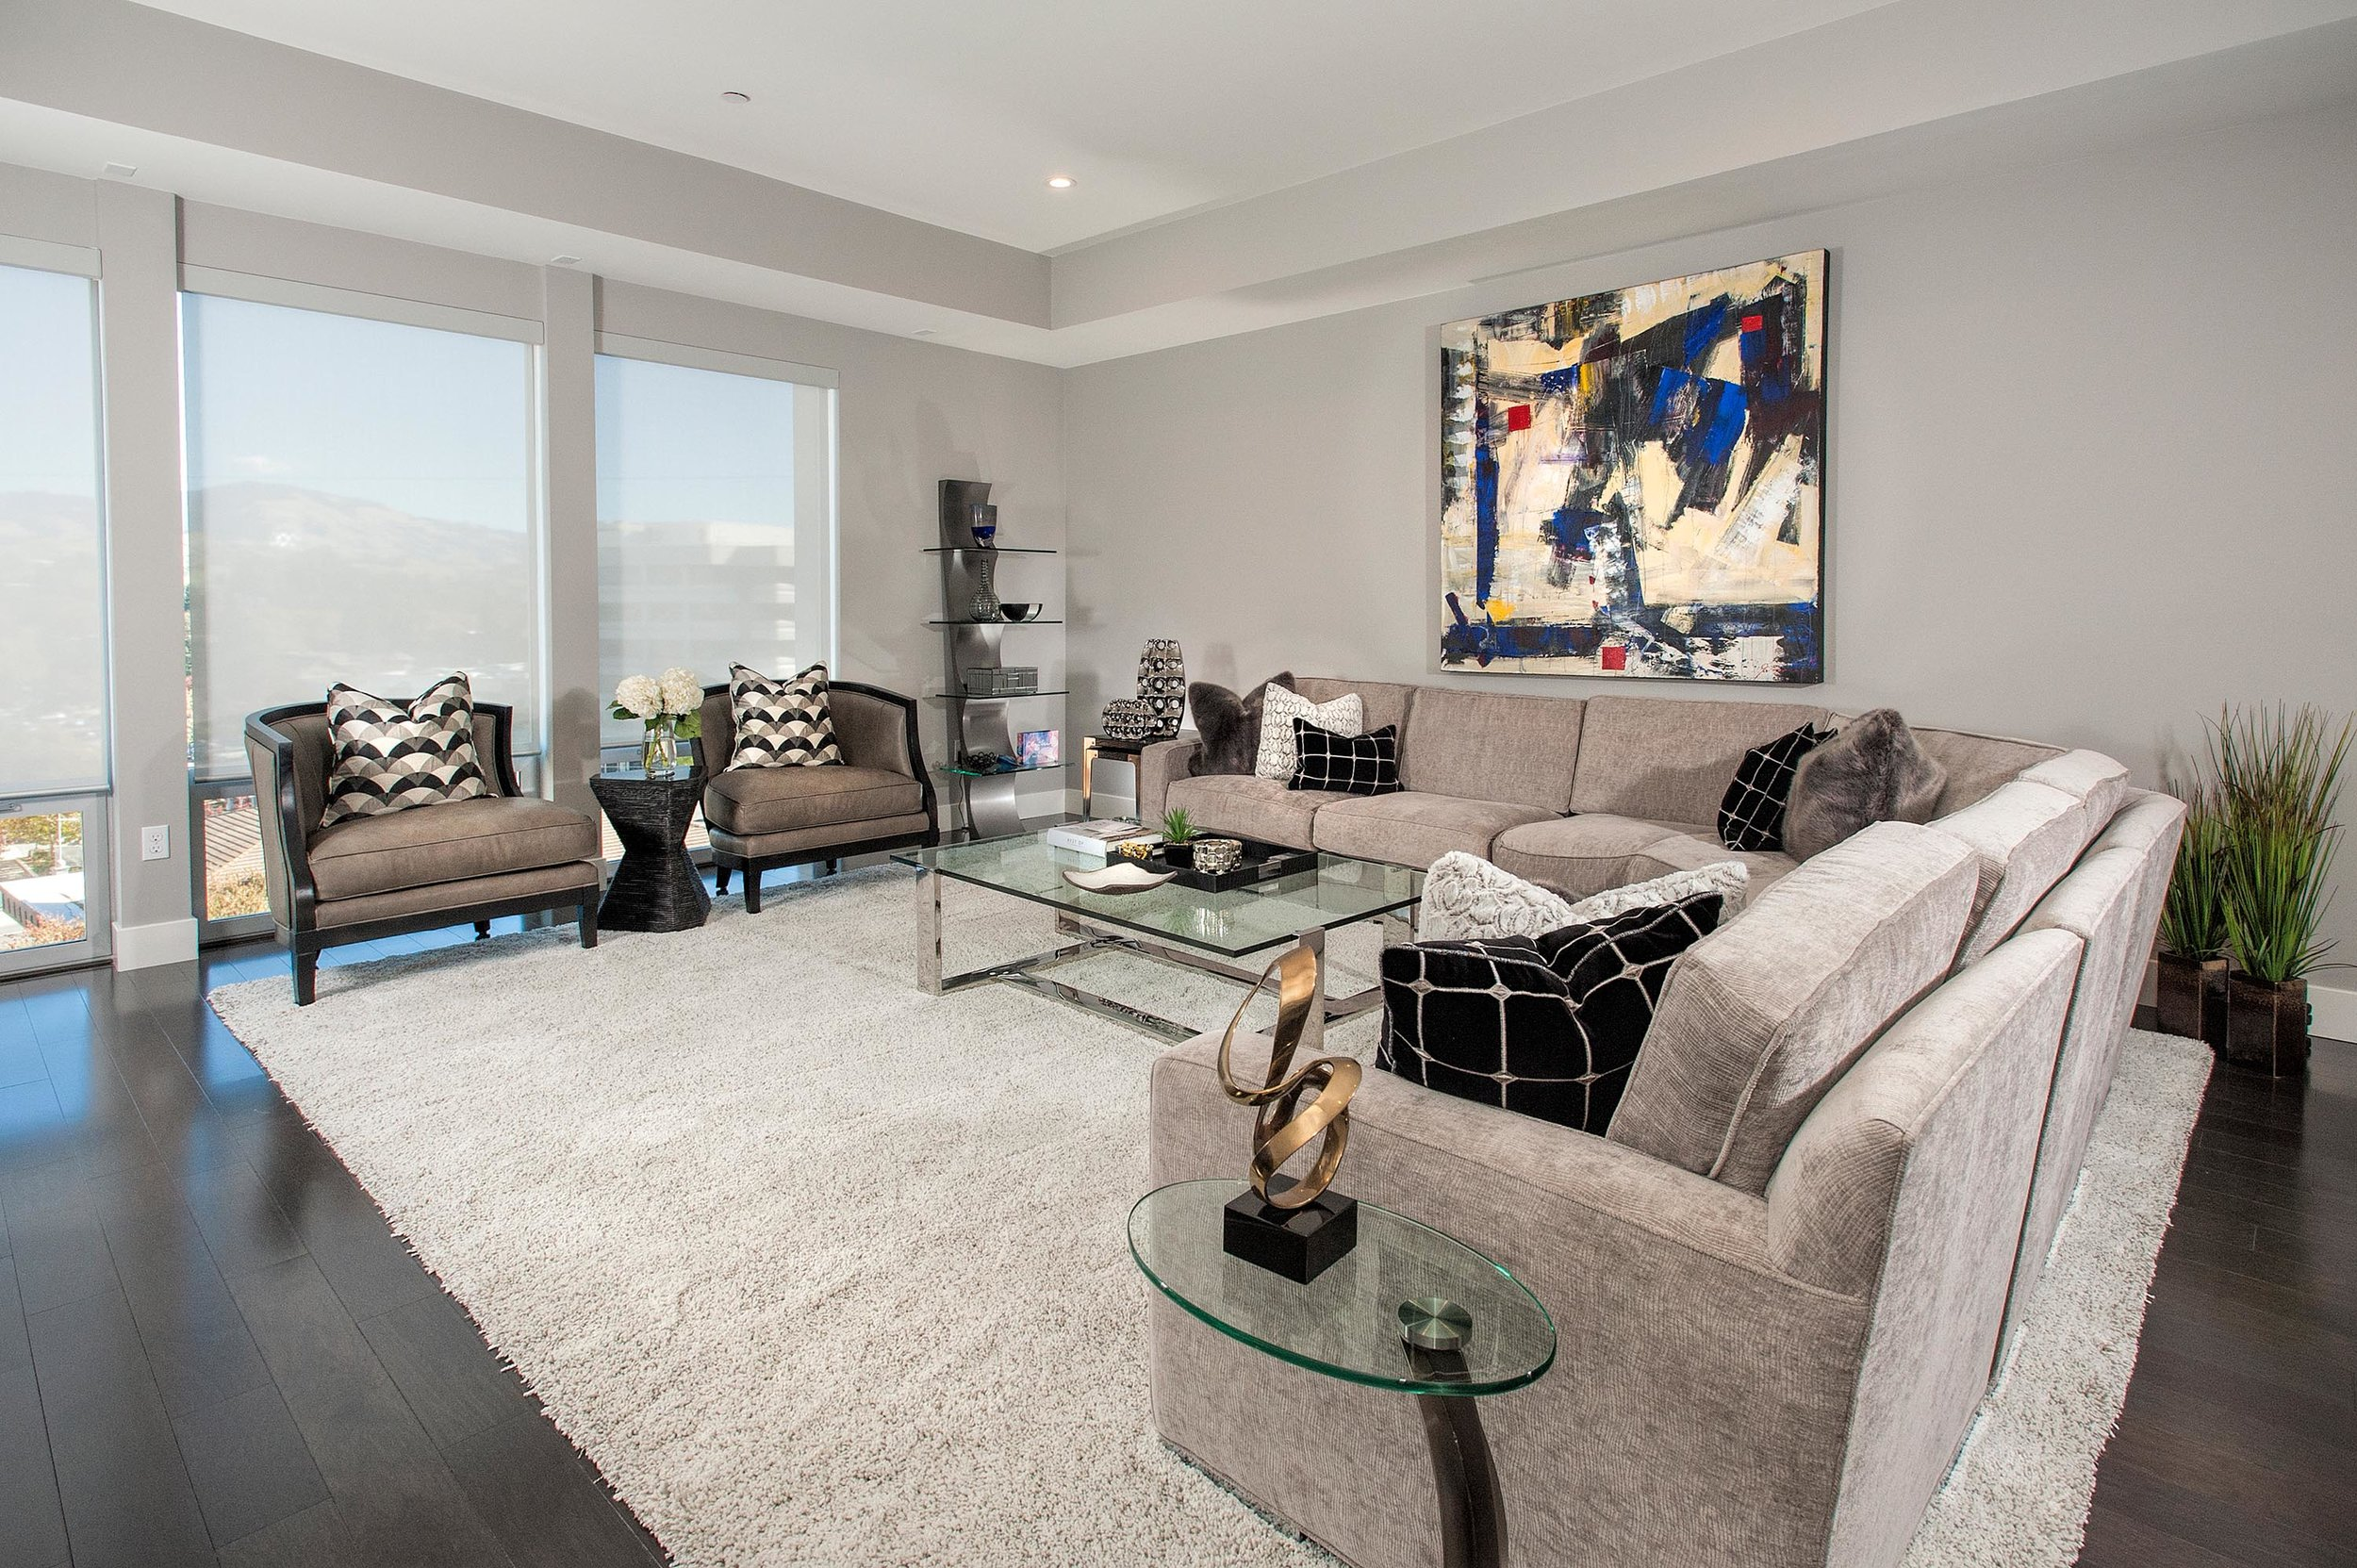 Contemporary living room with floor mattress and figurine